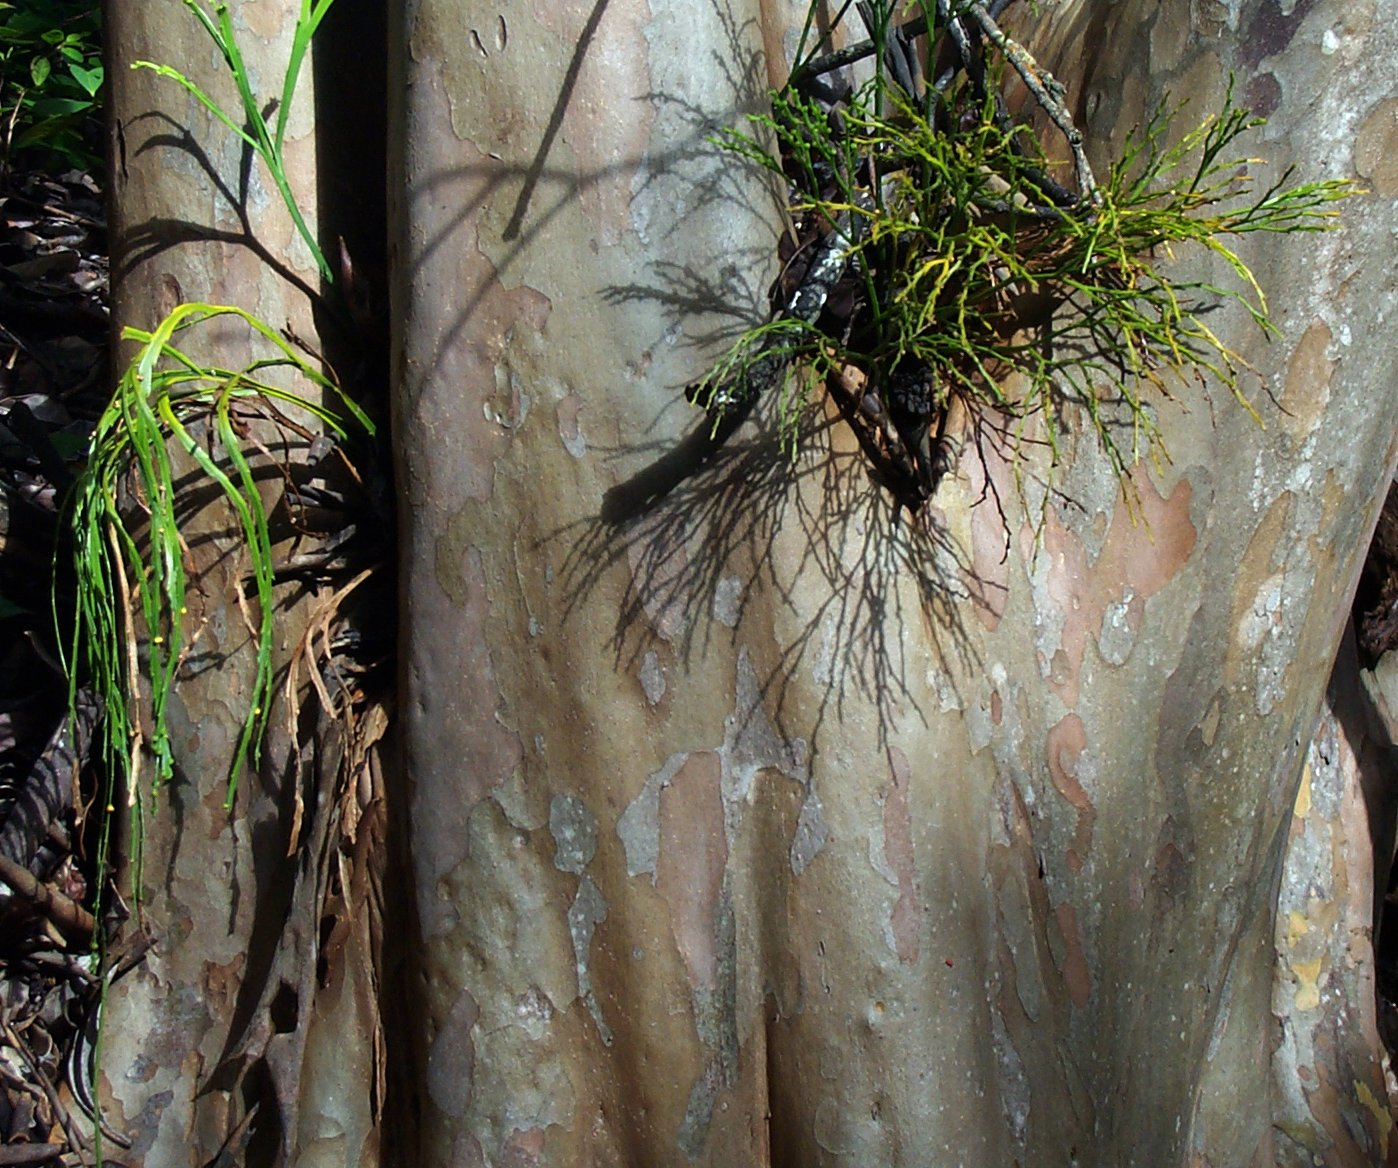 Psilotum complanatum  (left) and  Psilotum nudum  (right) growing epiphytically.